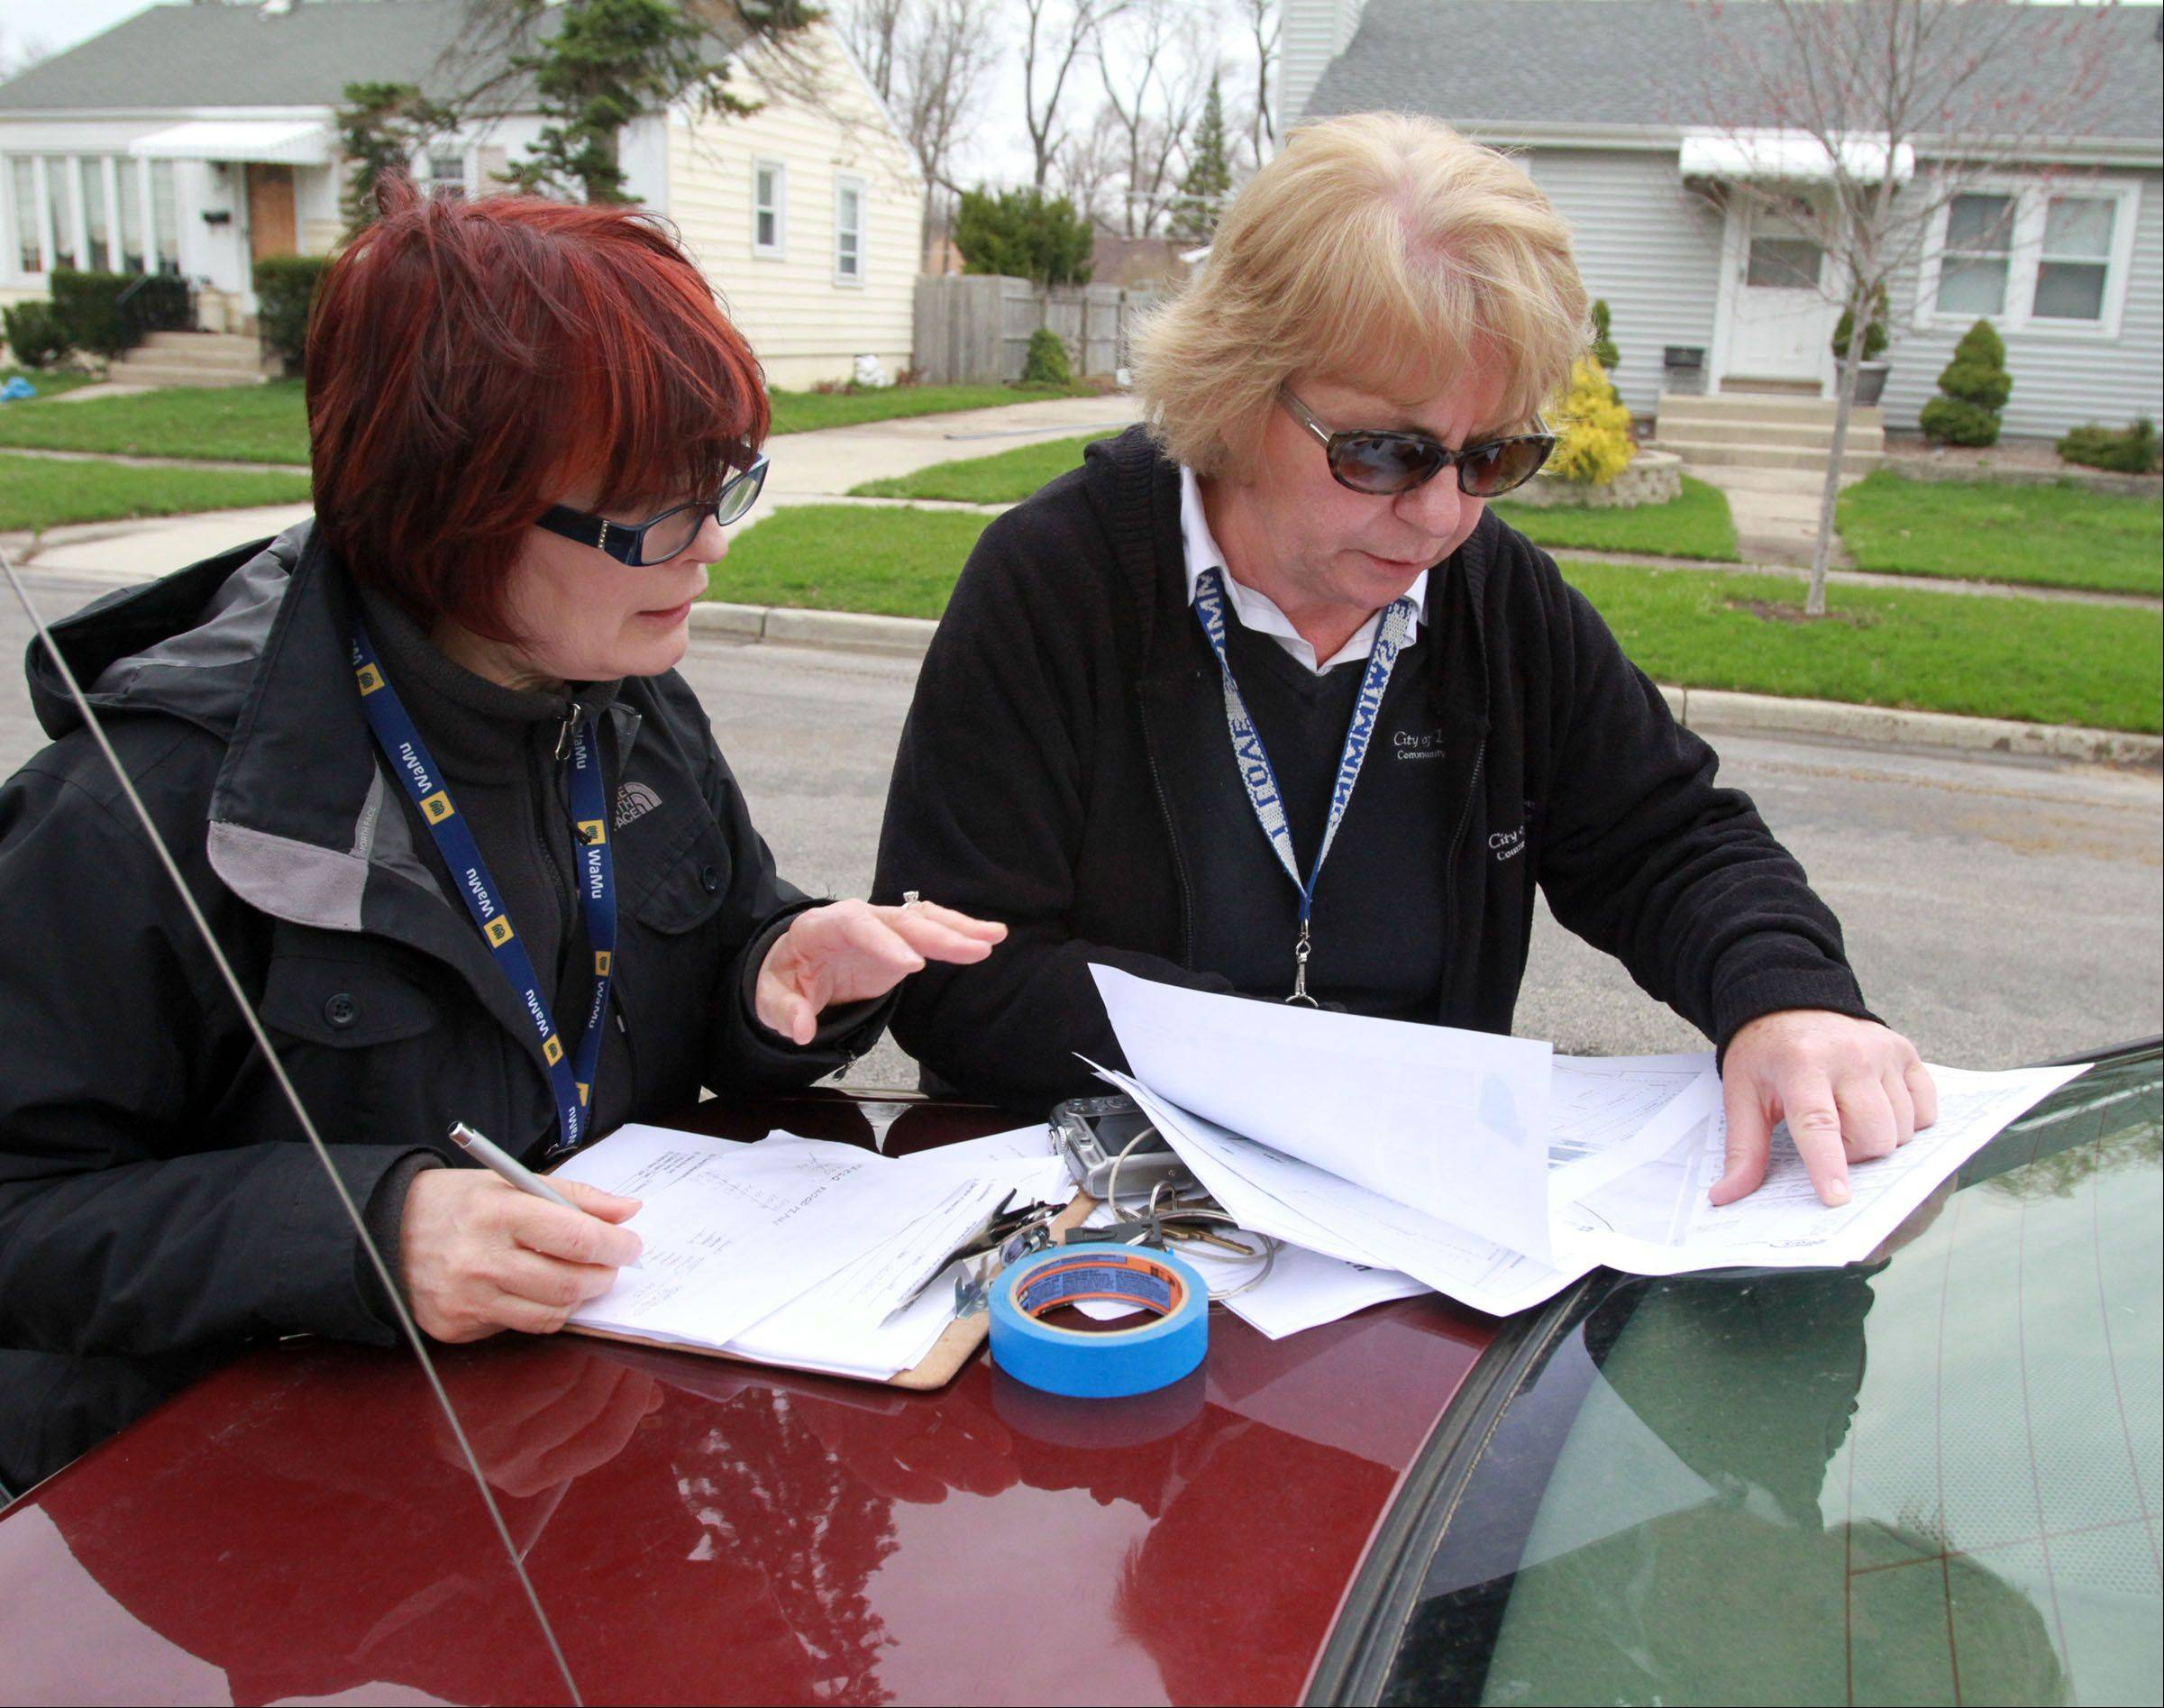 Des Plaines building inspectors Davorka Kirincic, left, and Pam Lunsmann, check a map on Fargo Street before going door to door checking homes for flood damage on Tuesday.